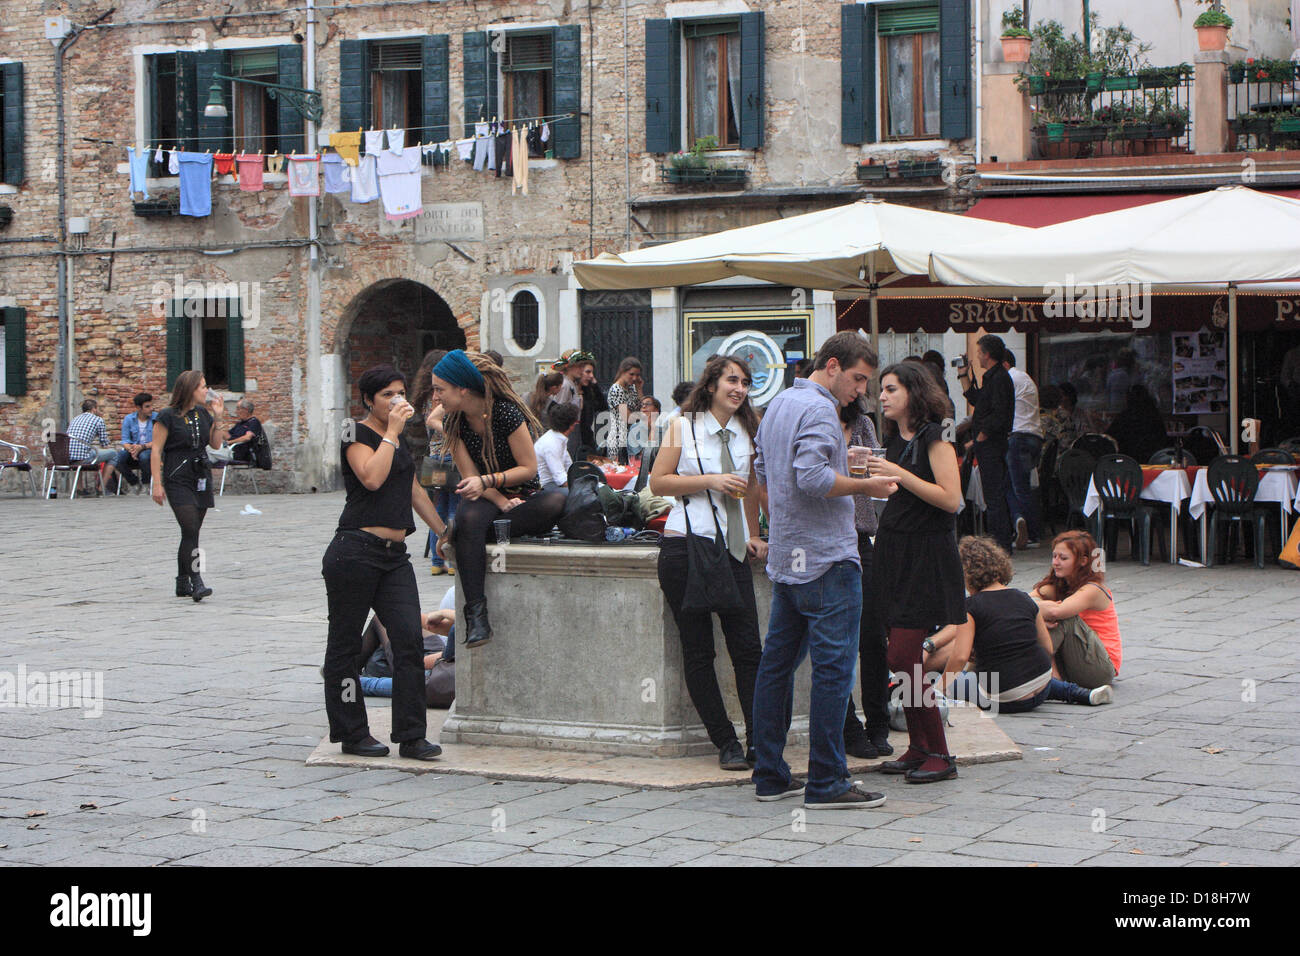 Students nightlife party at campo Santa Margherita, Venice, Italy - Stock Image